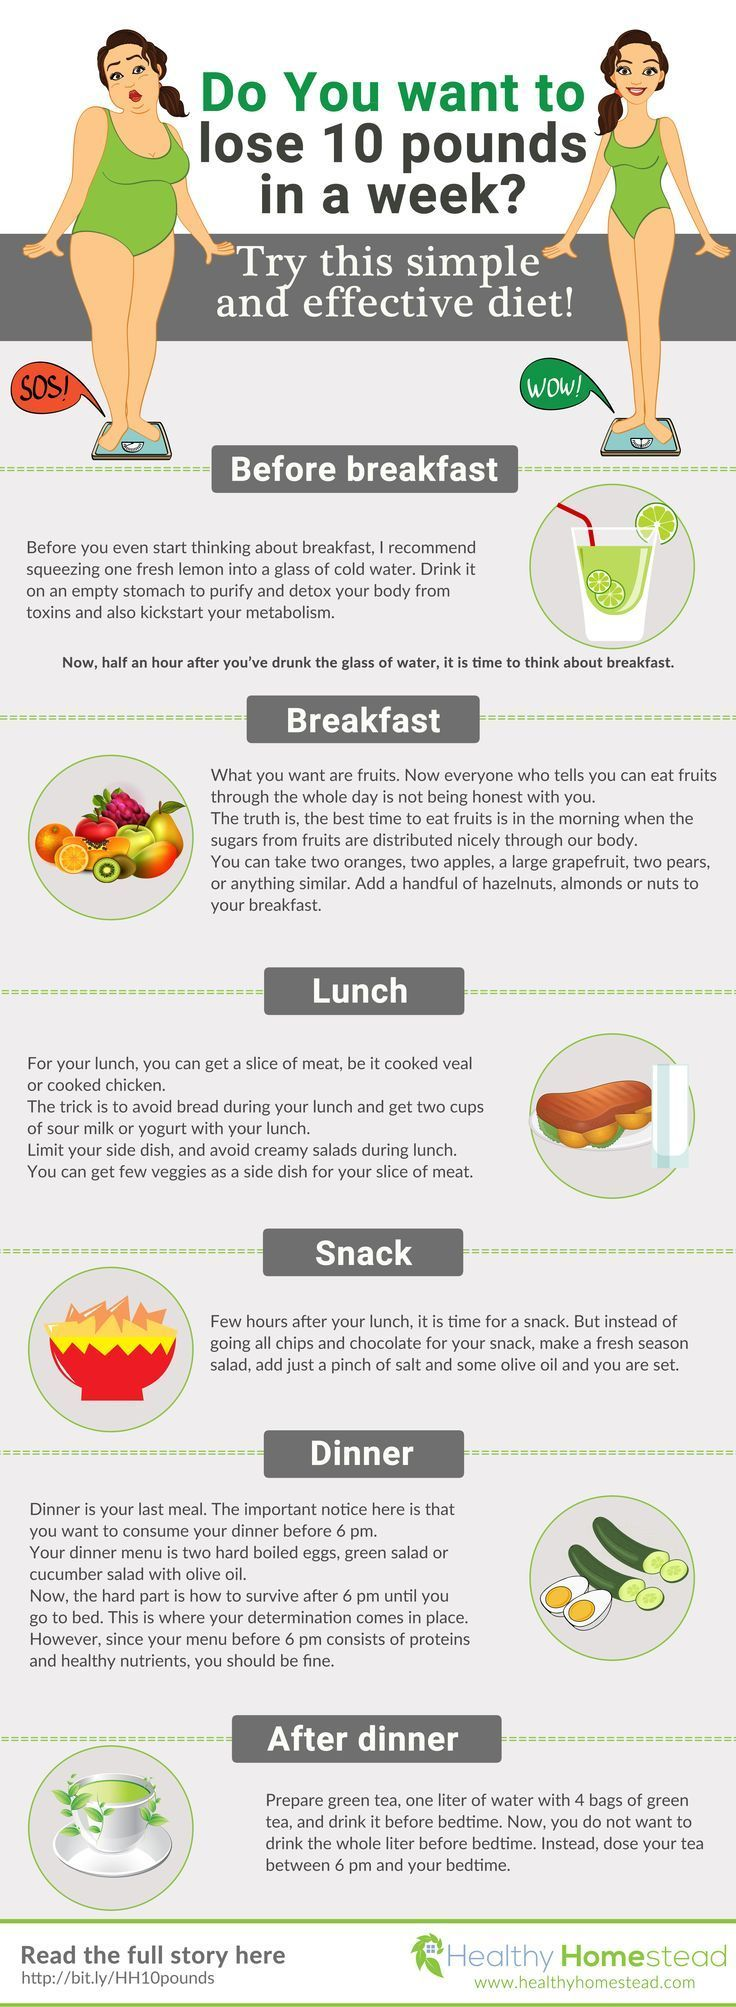 diet plan to lose weight while building muscle